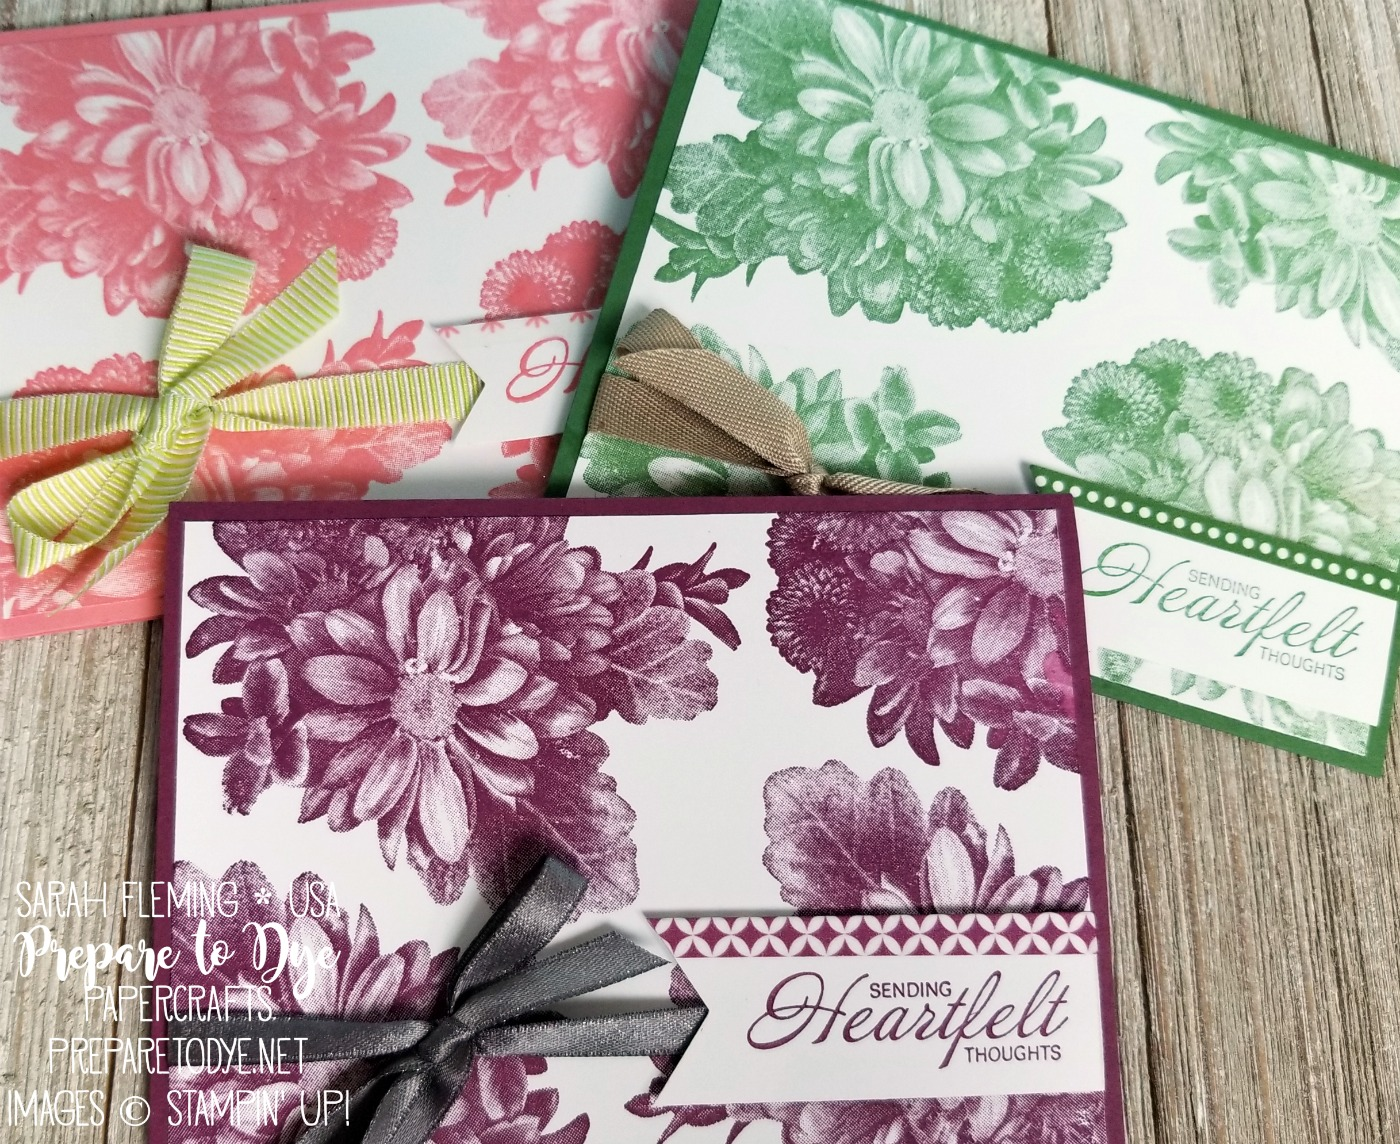 Stampin' Up! Heartfelt Blooms with washi tape - Sale-A-Bration freebie stamp set with $50 purchase through March 31 - Sarah Fleming - Prepare to Dye Papercrafts